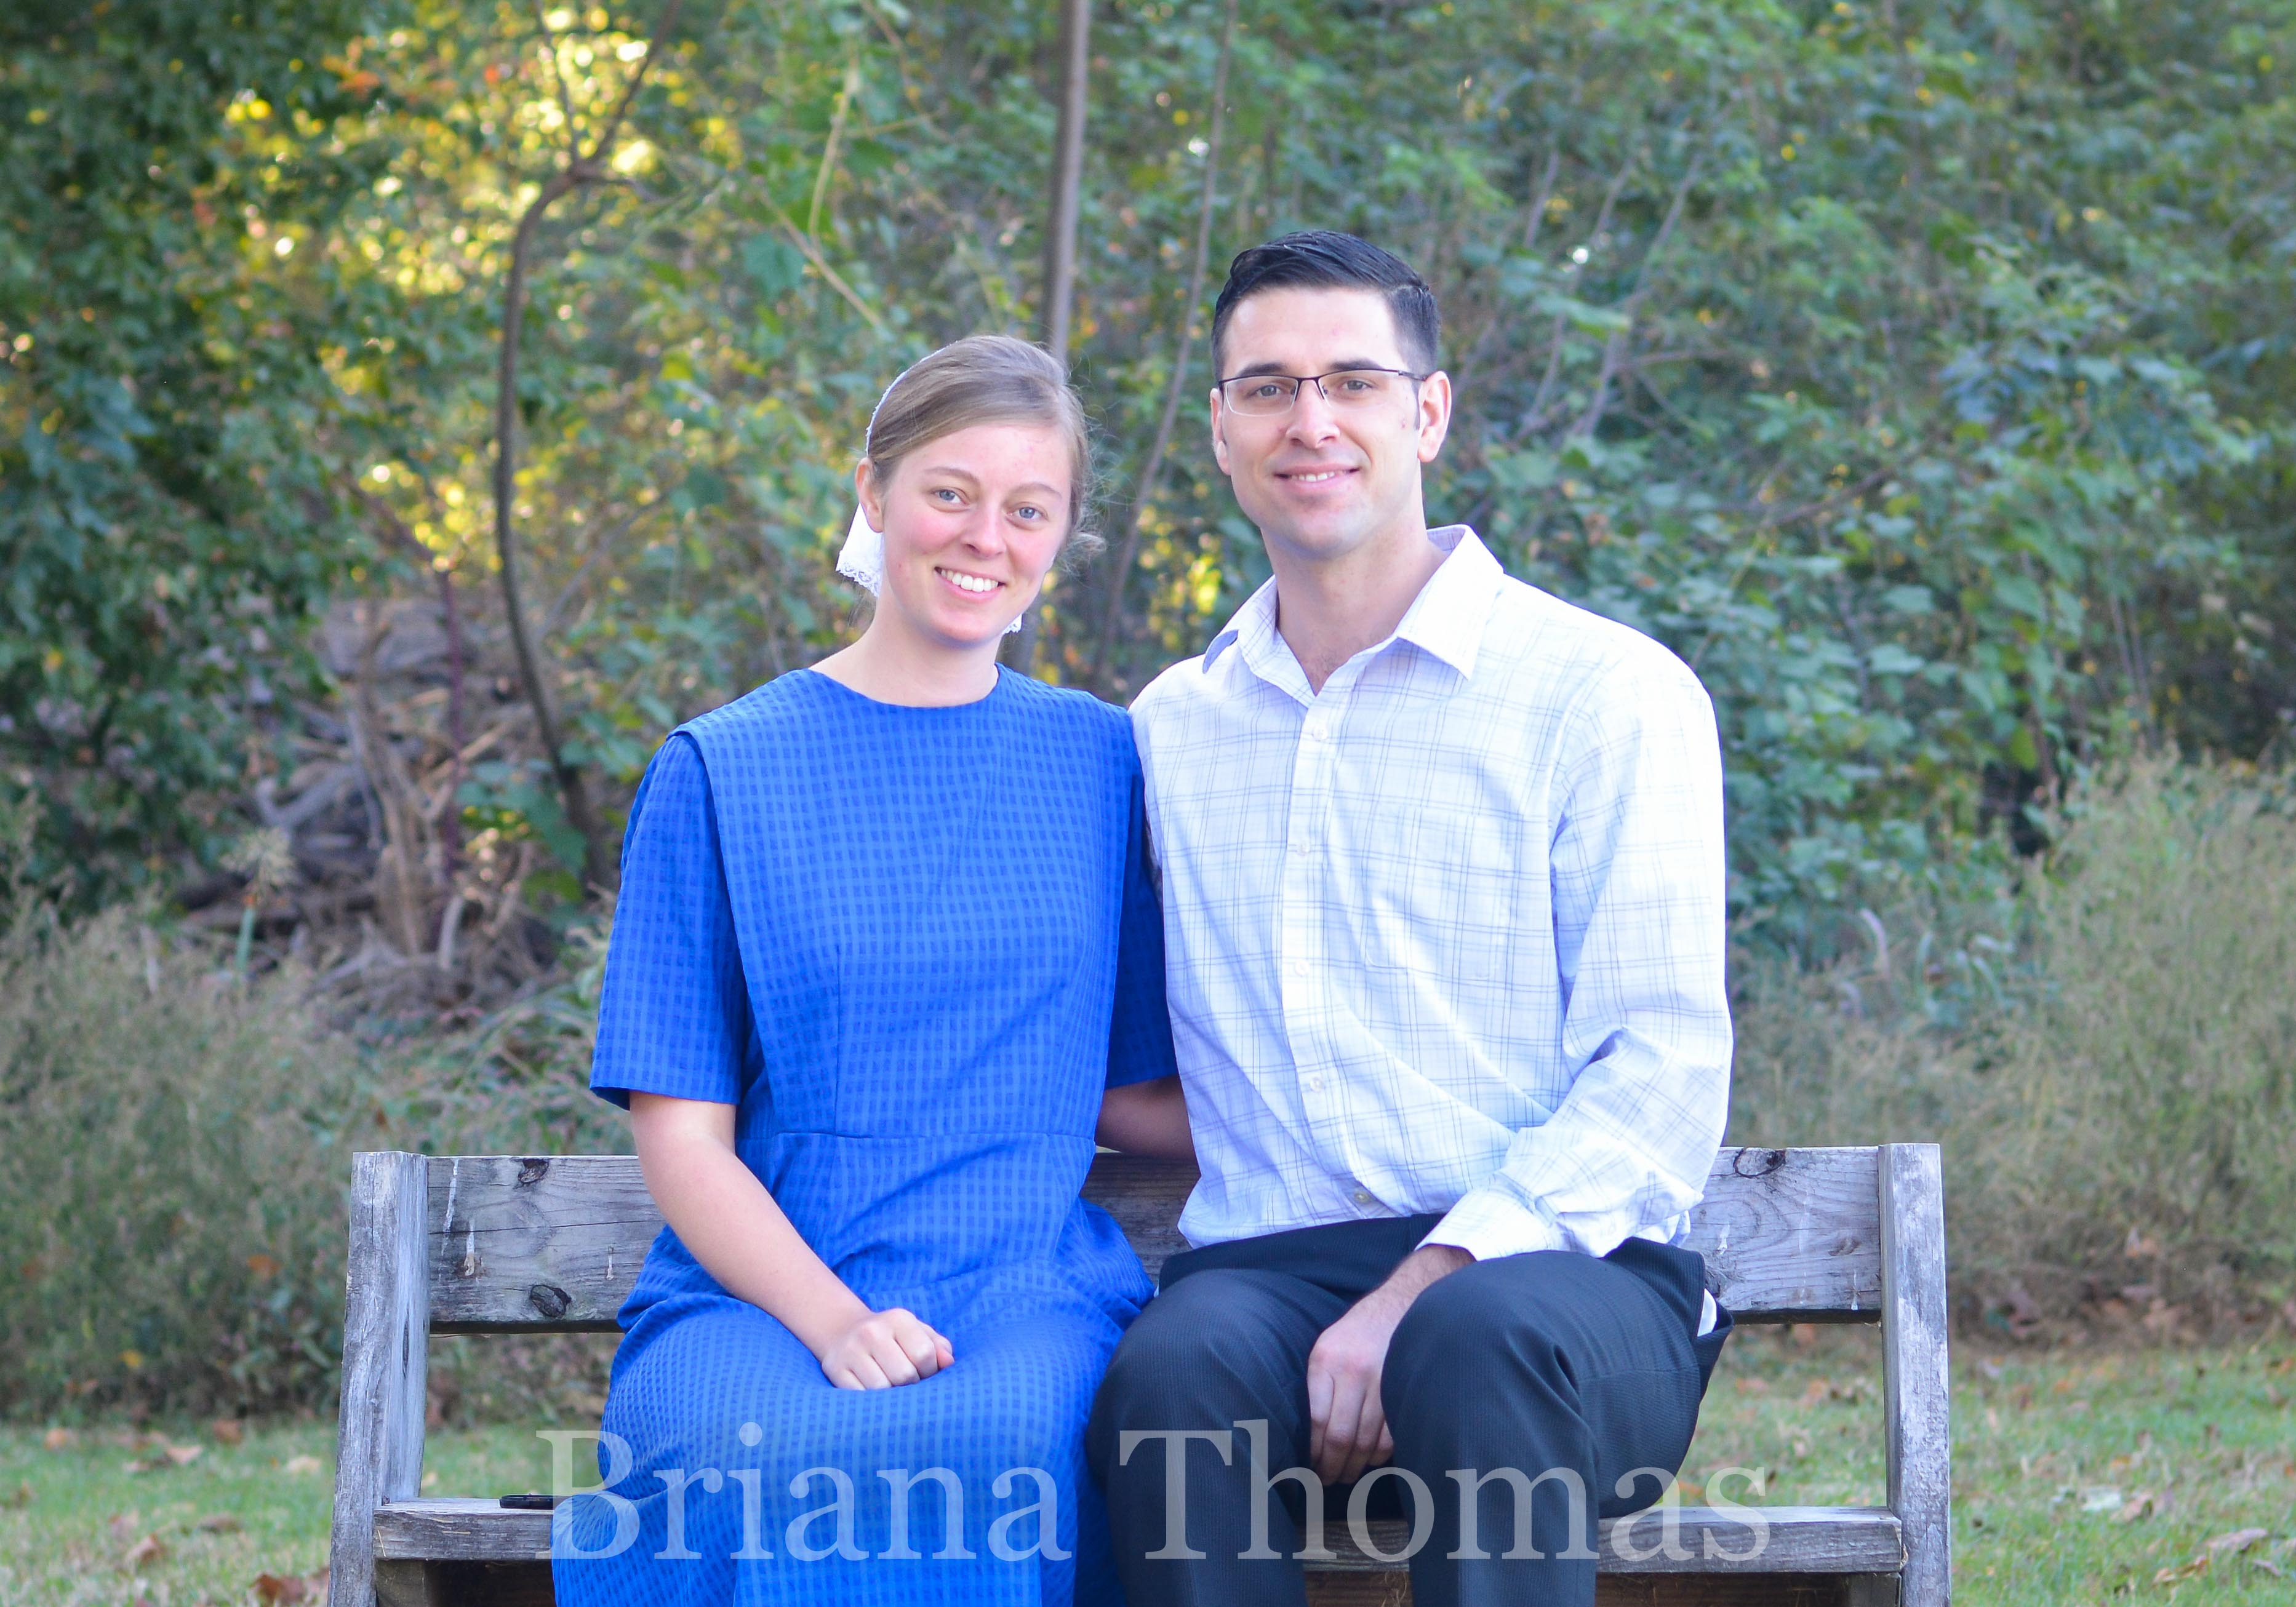 Yes, my friends, I am getting married on February 17th, 2018! Here is Ryan and Briana: The Love Story, Part 1. Were you surprised?